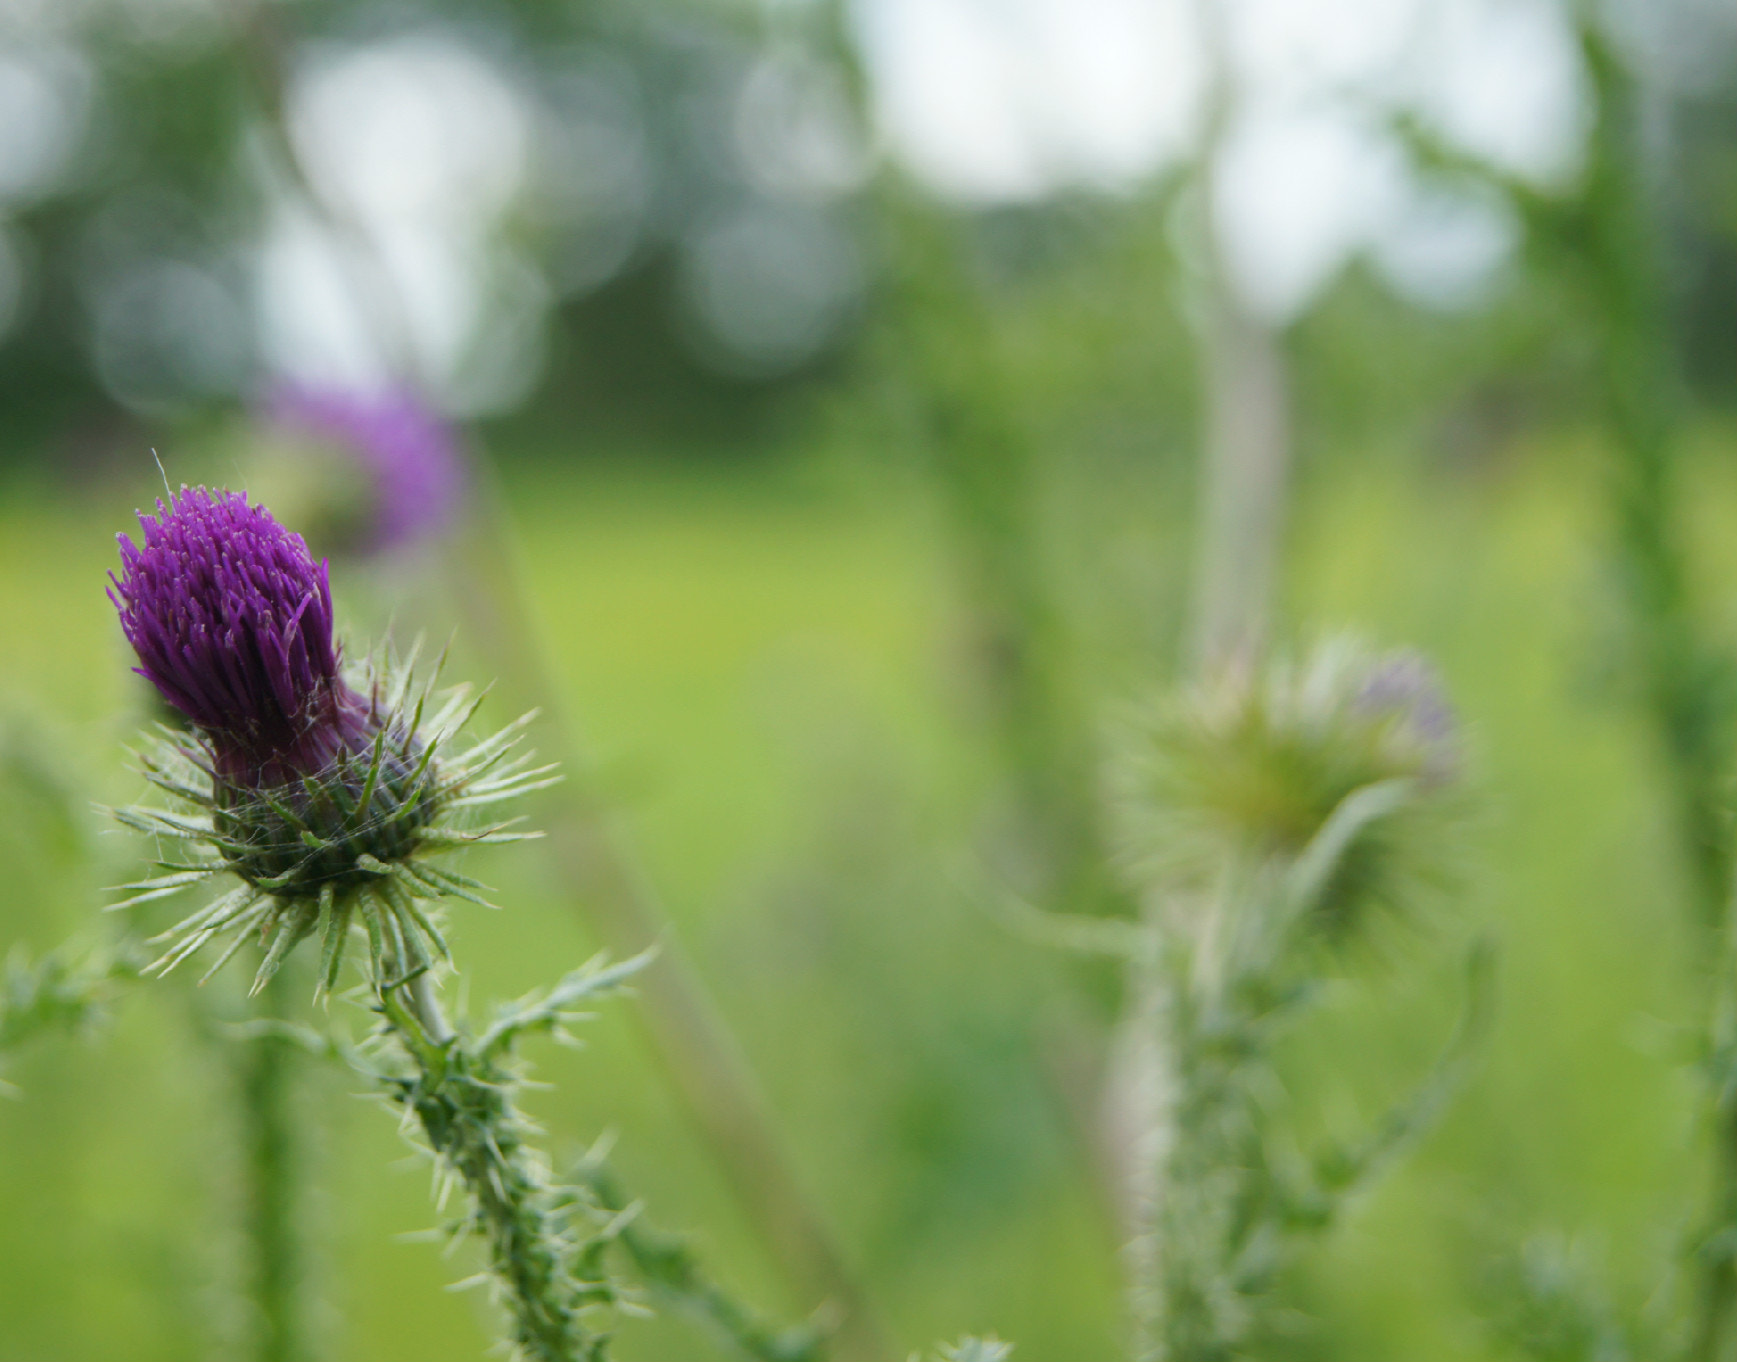 Photograph Thistle by Adhib M on 500px